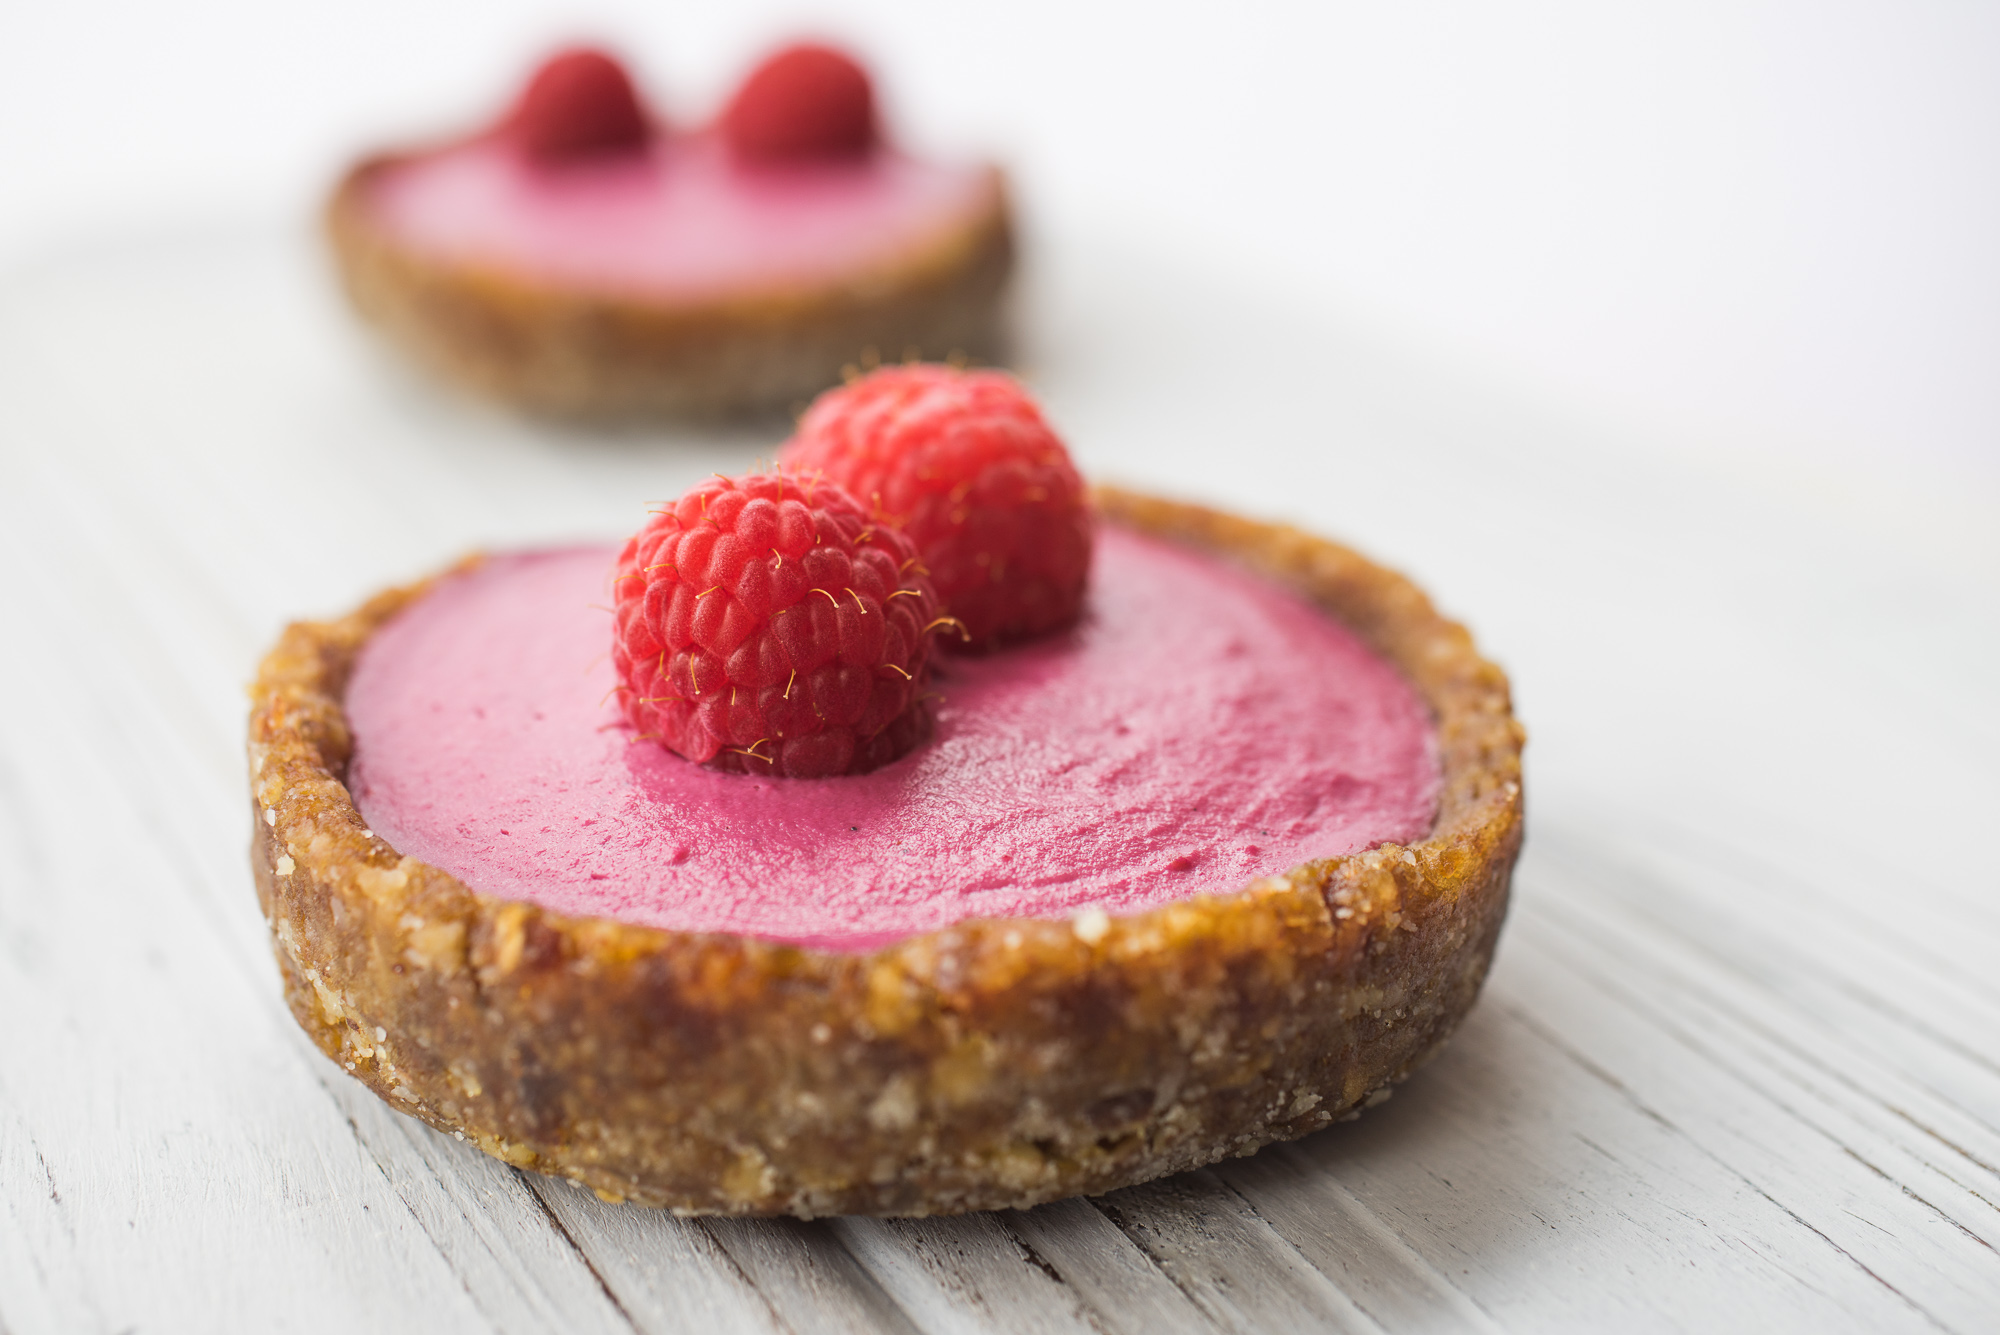 2 Red fruit tarts topped with raspberries